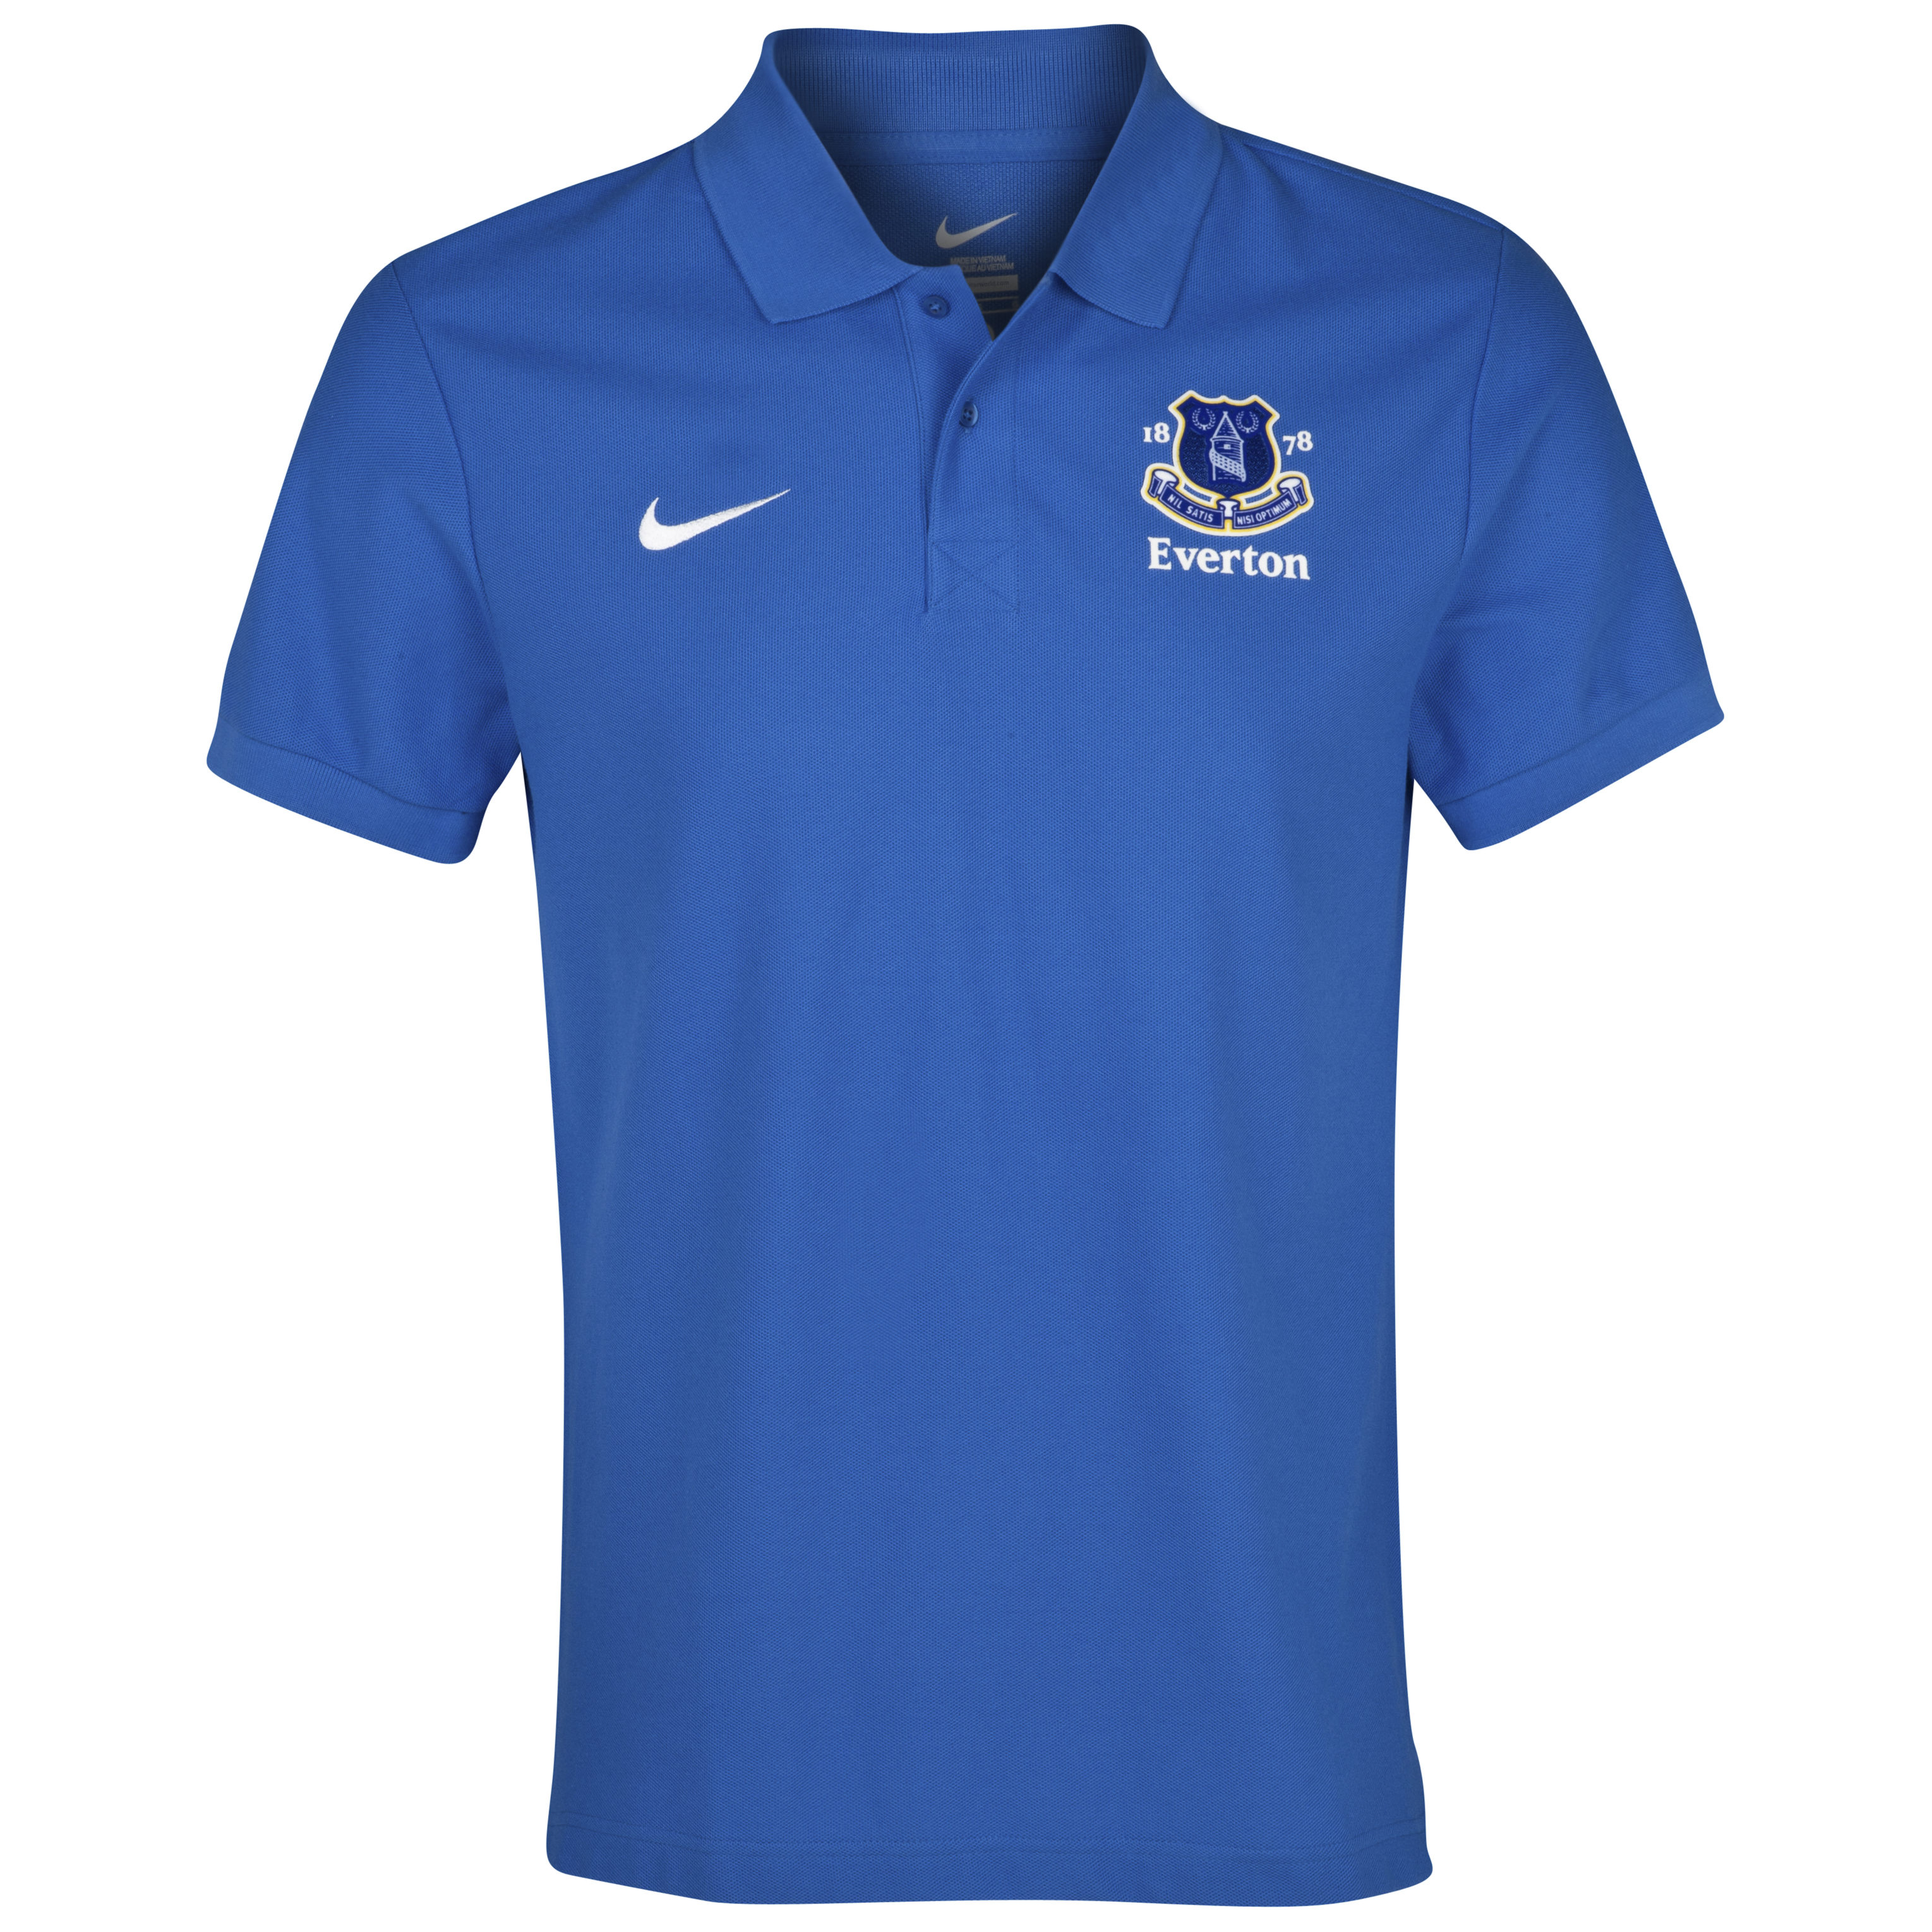 Everton Polo - Junior - Royal Blue/White